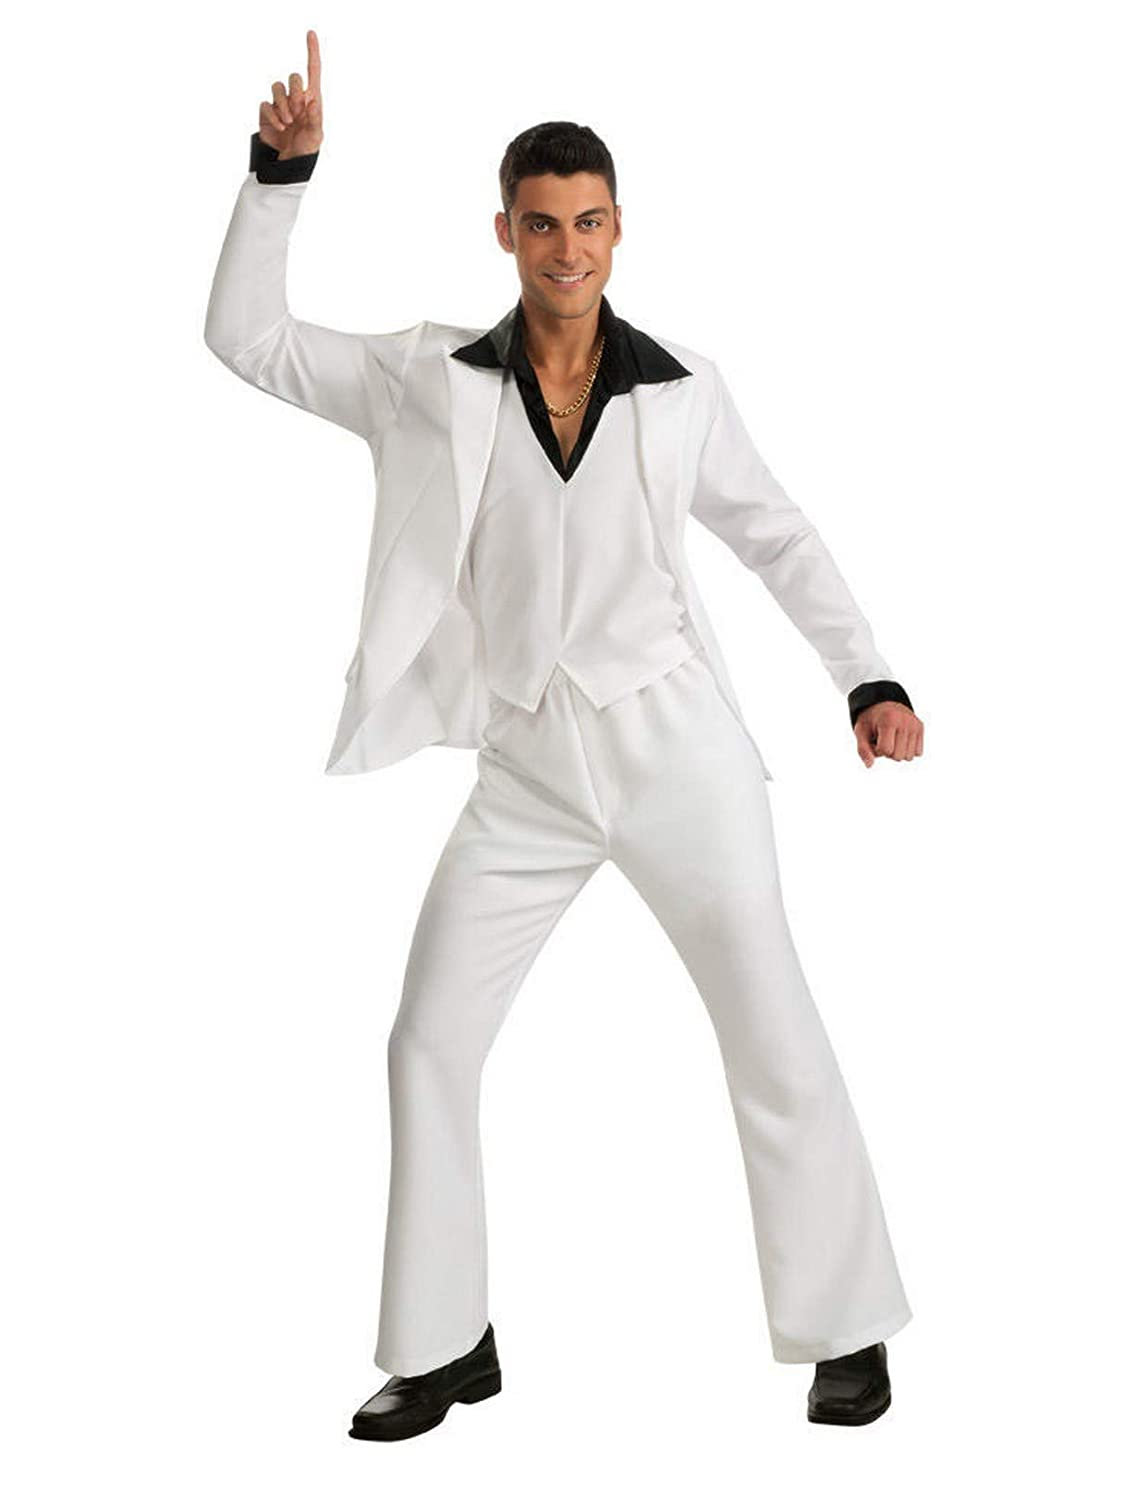 1970s Men's Suits History | Sport Coats & Tuxedos Rubies Costume Saturday Night Fever Costume $61.74 AT vintagedancer.com